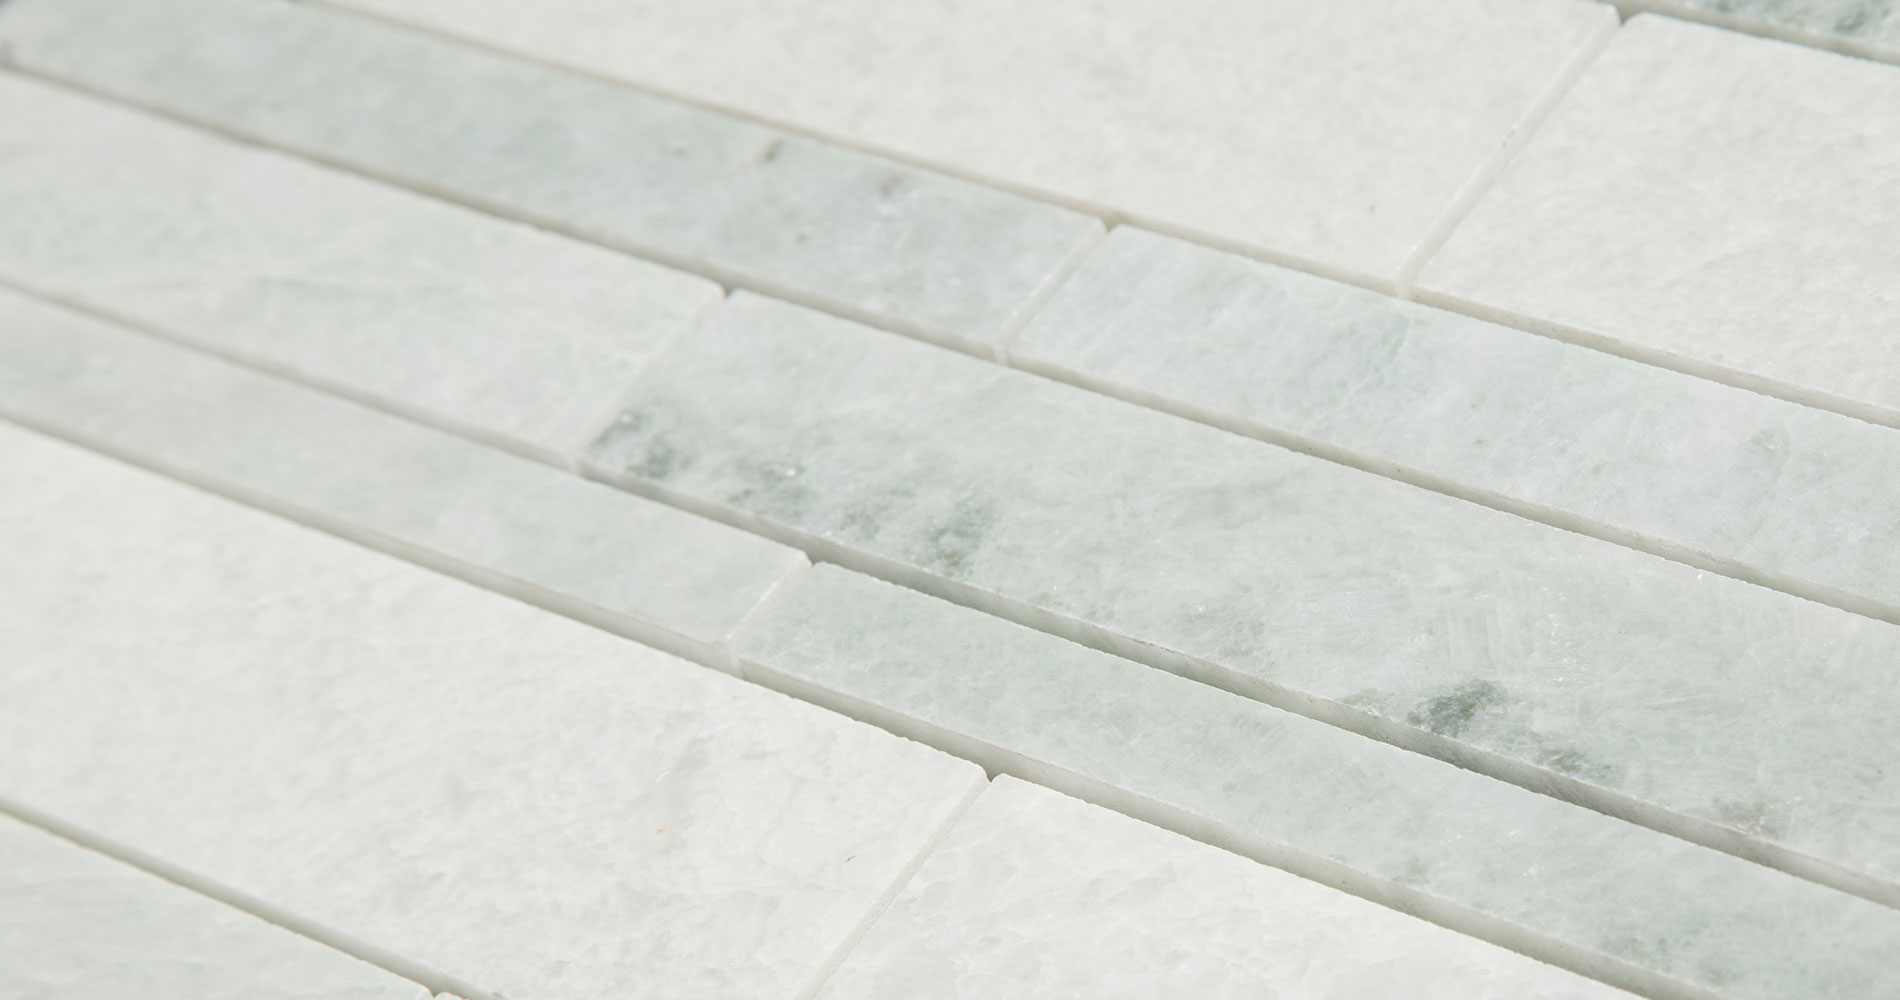 centurymosaic-Interlocking-Strip-Marble-Mosaic-Tile-4